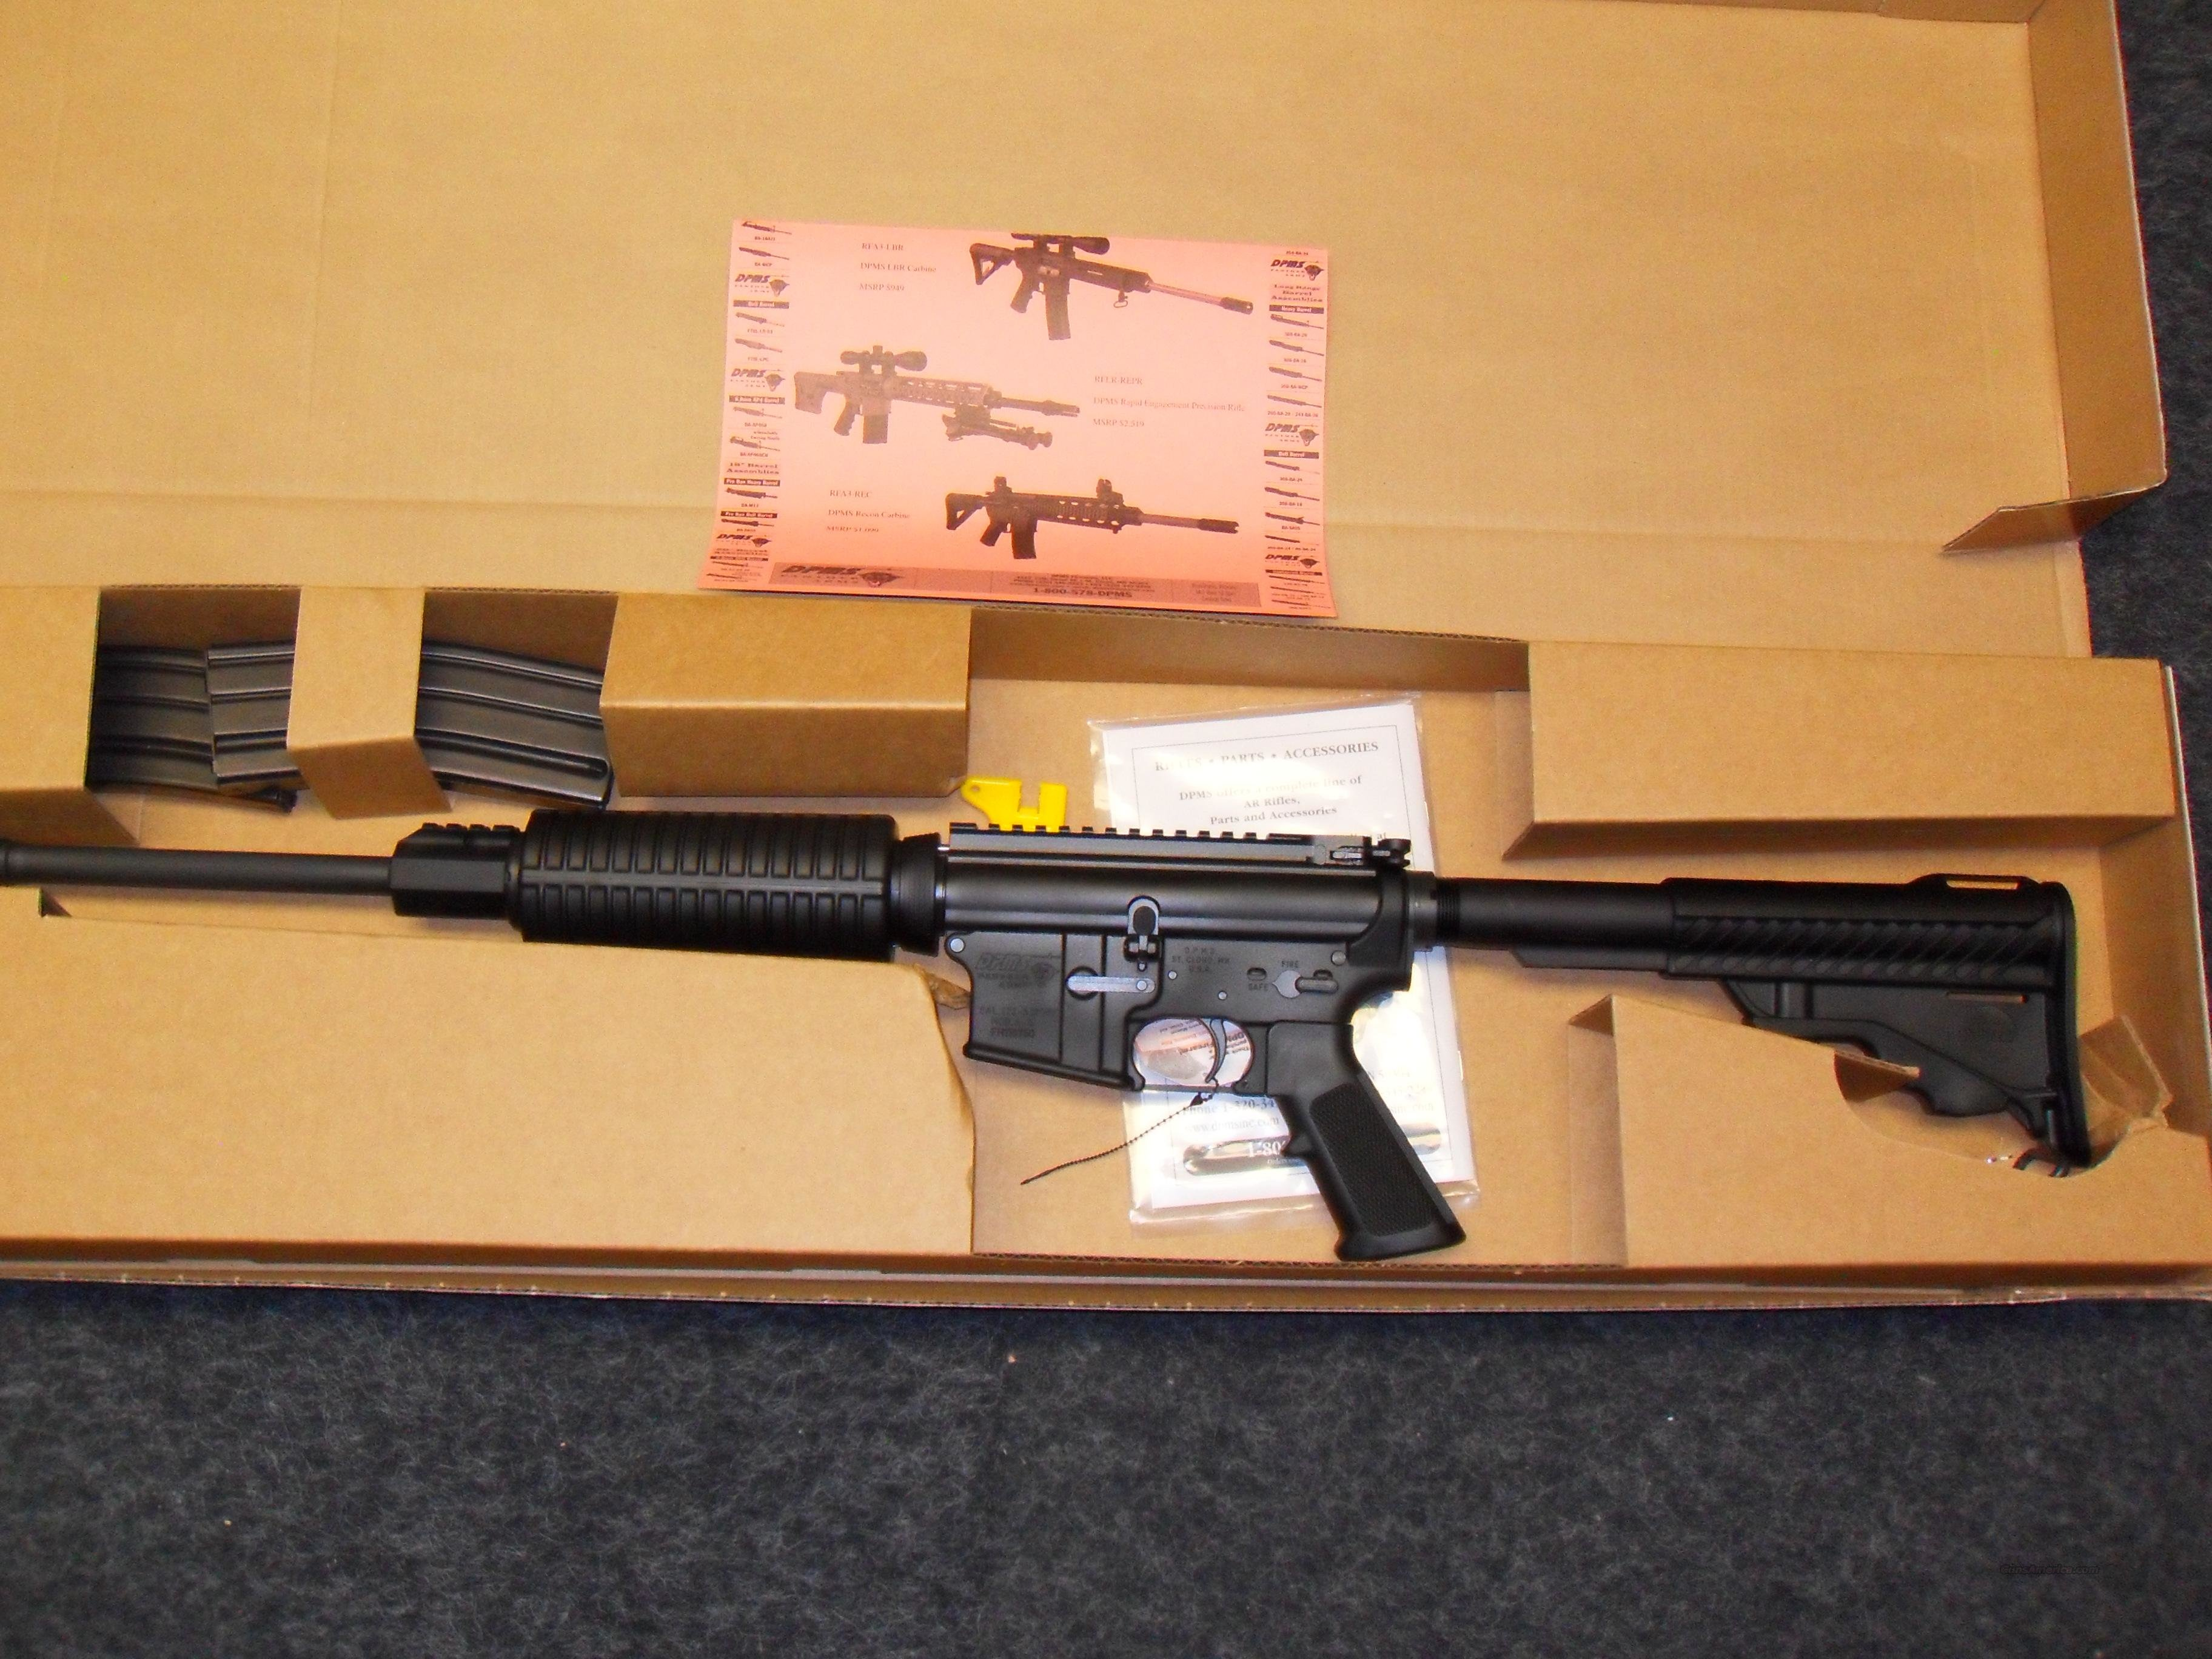 DPMS Sportical Ar-15  5.56/223  NIB    Guns > Rifles > DPMS - Panther Arms > Complete Rifle